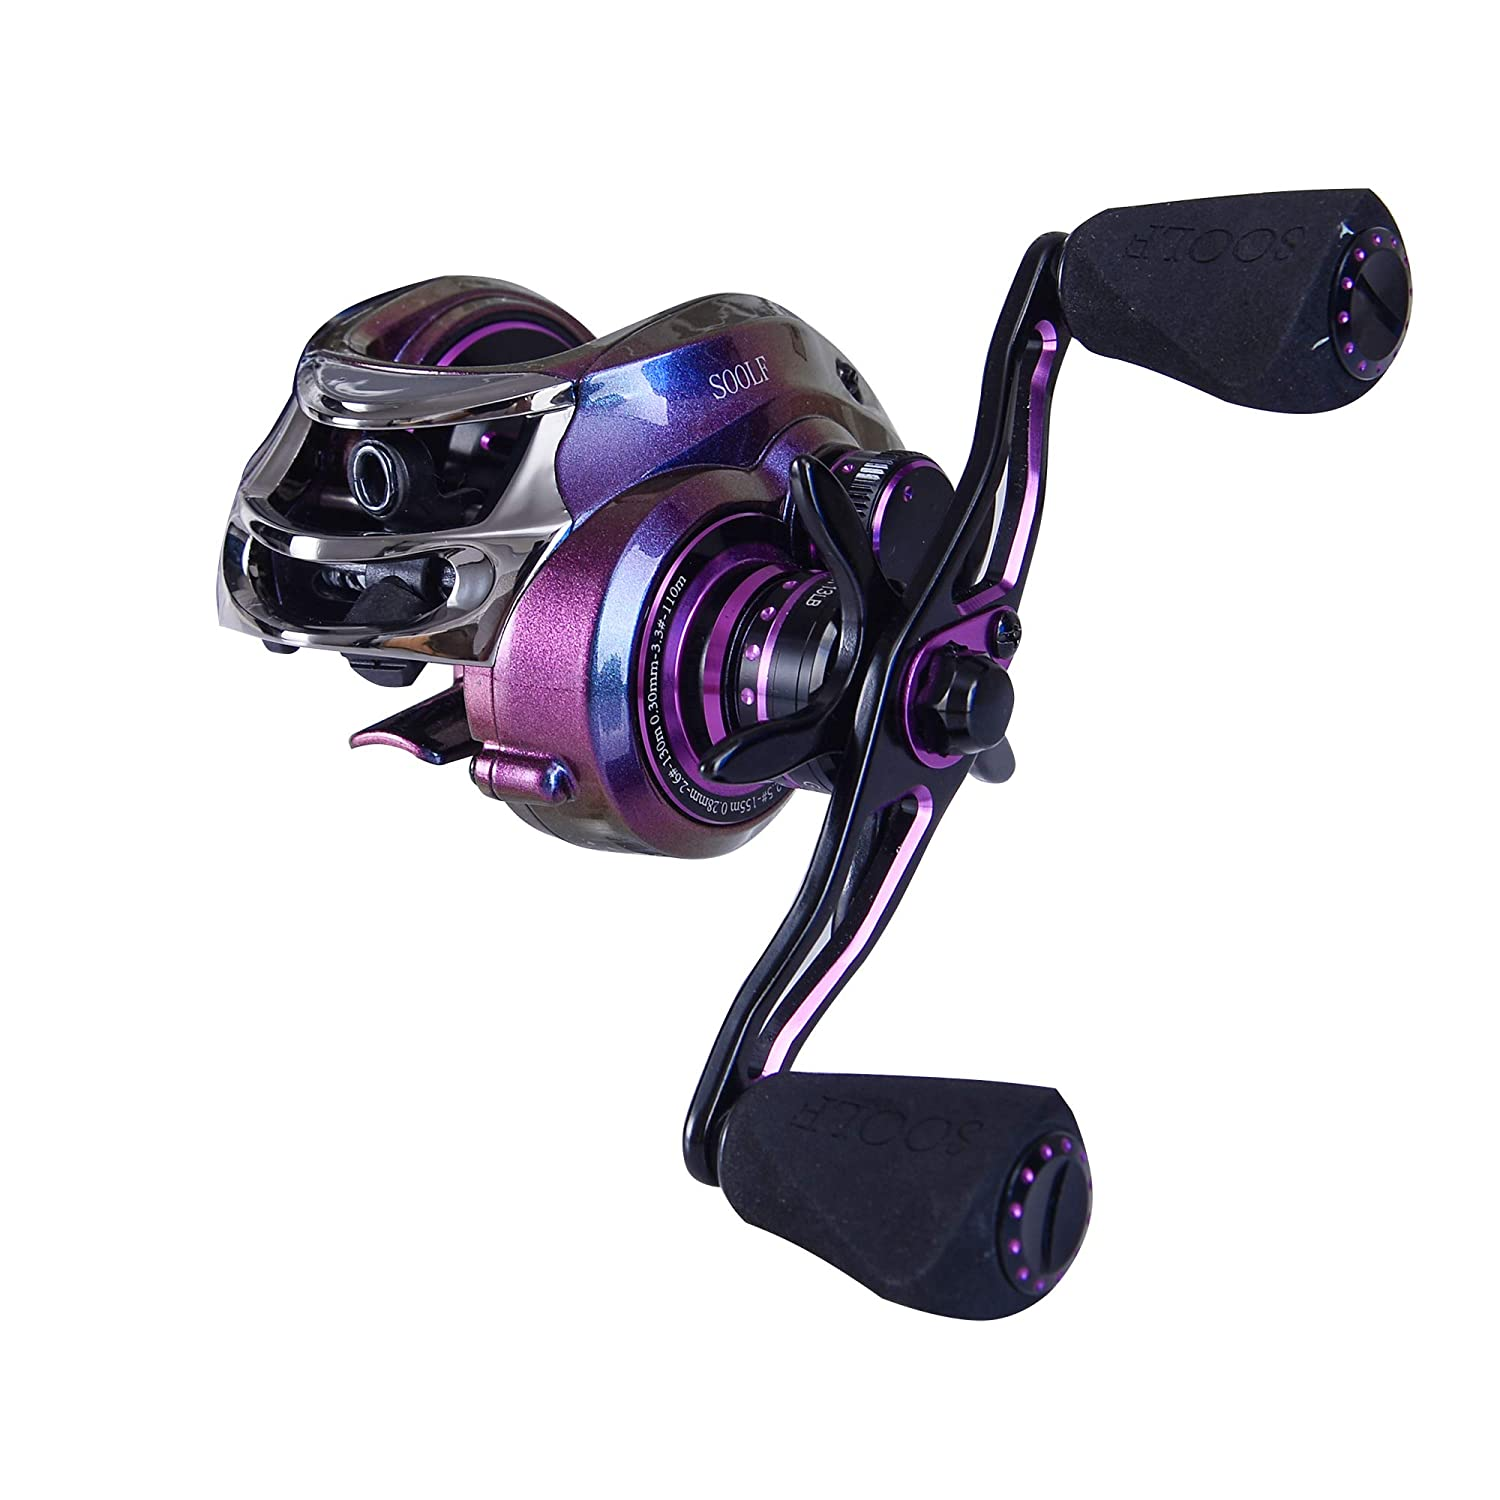 SOOLF Baitcasting Fishing Reel, 17.5LB Carbon Fiber Drag, 7.0 1 Gear Ratio, Magnetic Brake System, Right Left Handed